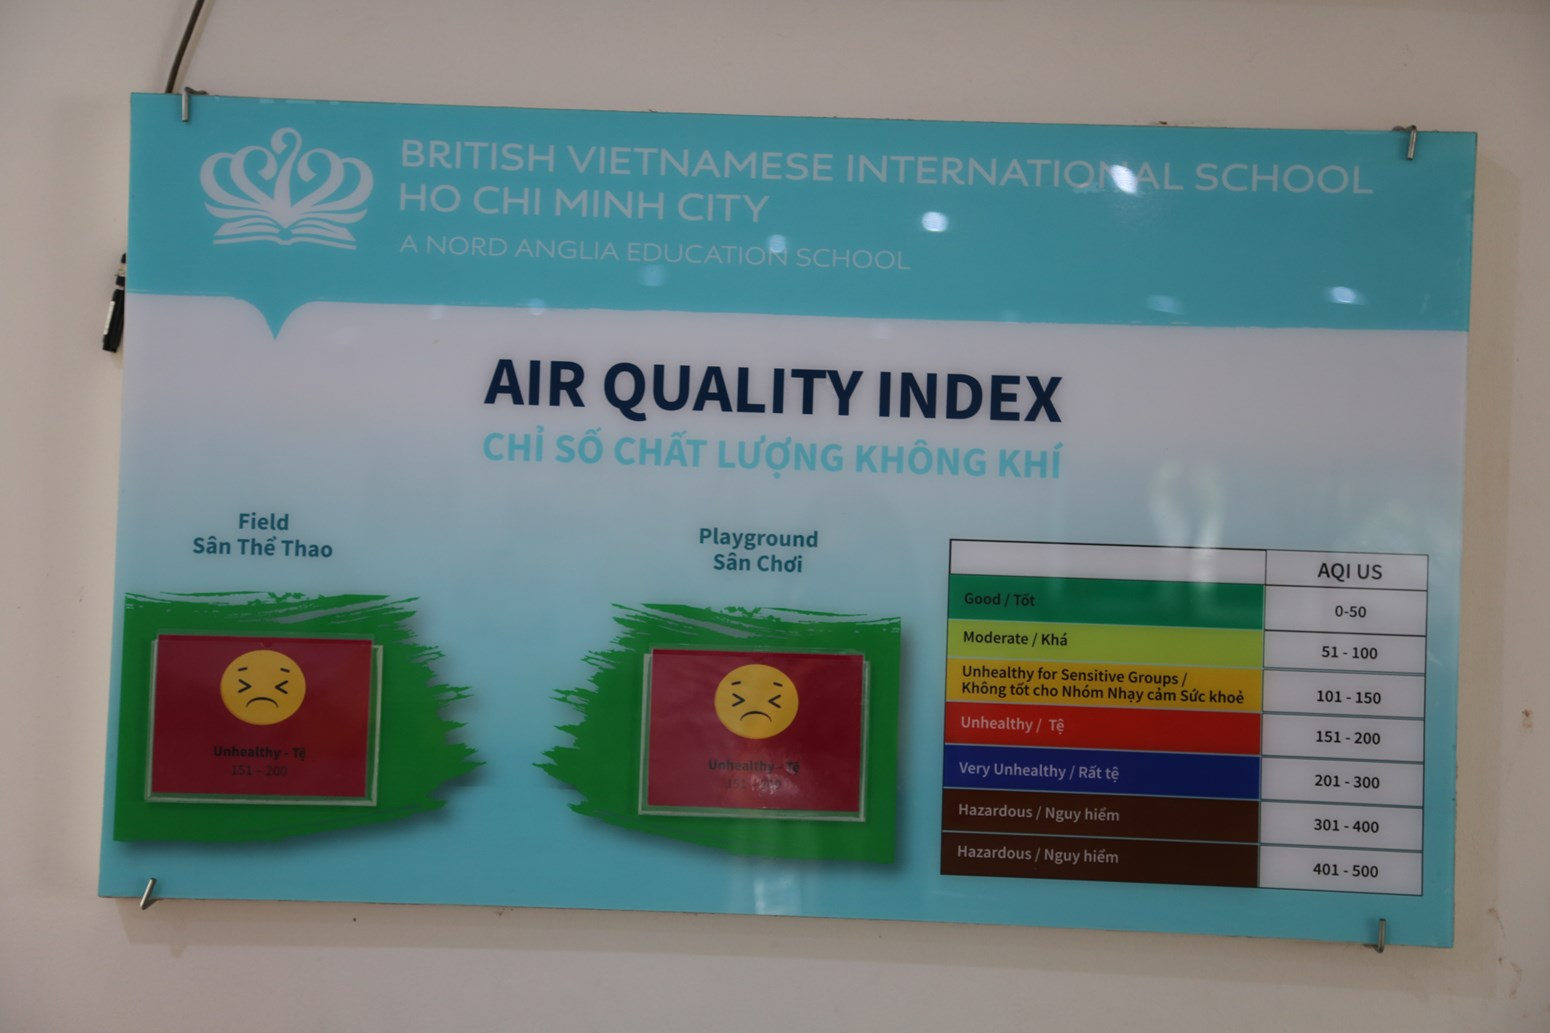 Air Quality Index BVIS HCMC